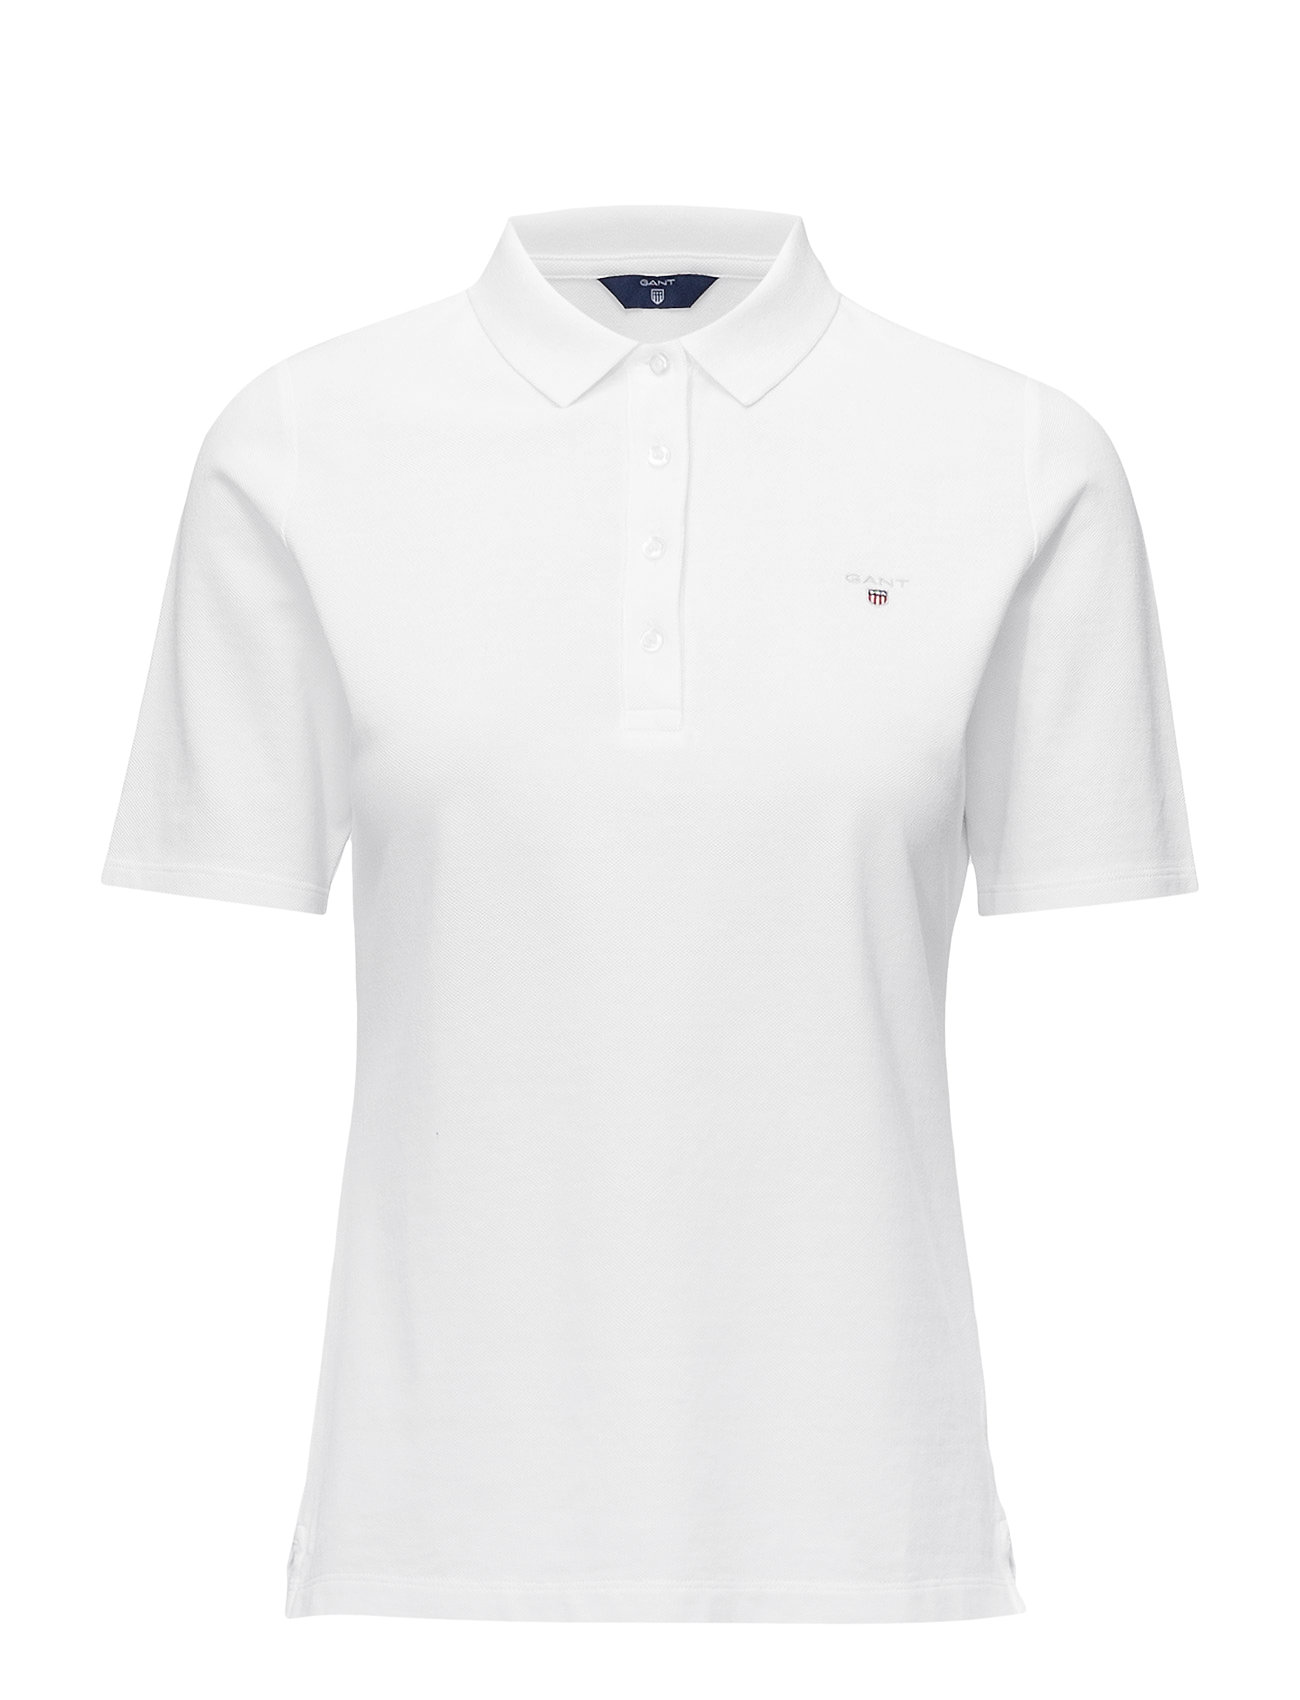 GANT THE ORIGINAL PIQUE LSS - WHITE